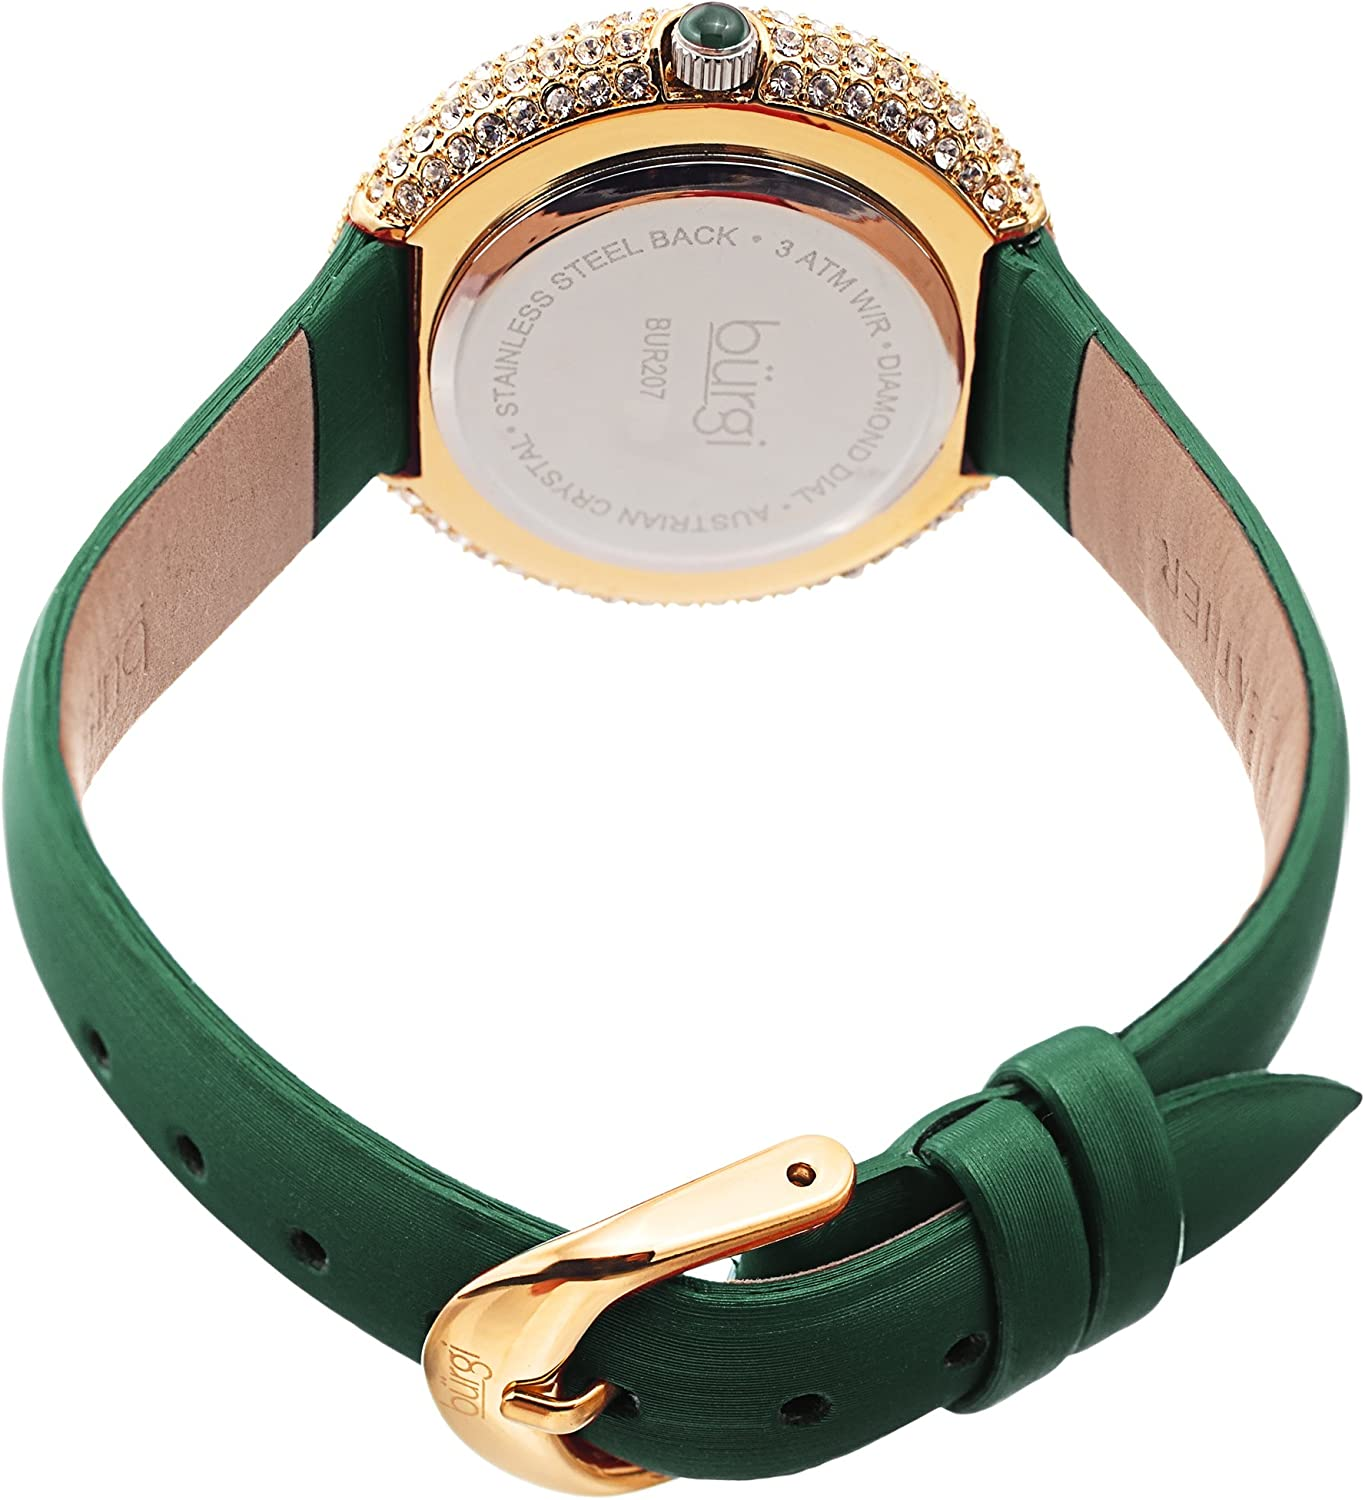 Burgi Swarovski Crystals Encrusted Quilted Dial - Swarovski Crystals Bezel with Satin Leather Strap Women's Watch - Mothers Day Gift - BUR207 Emerald Green & Gold